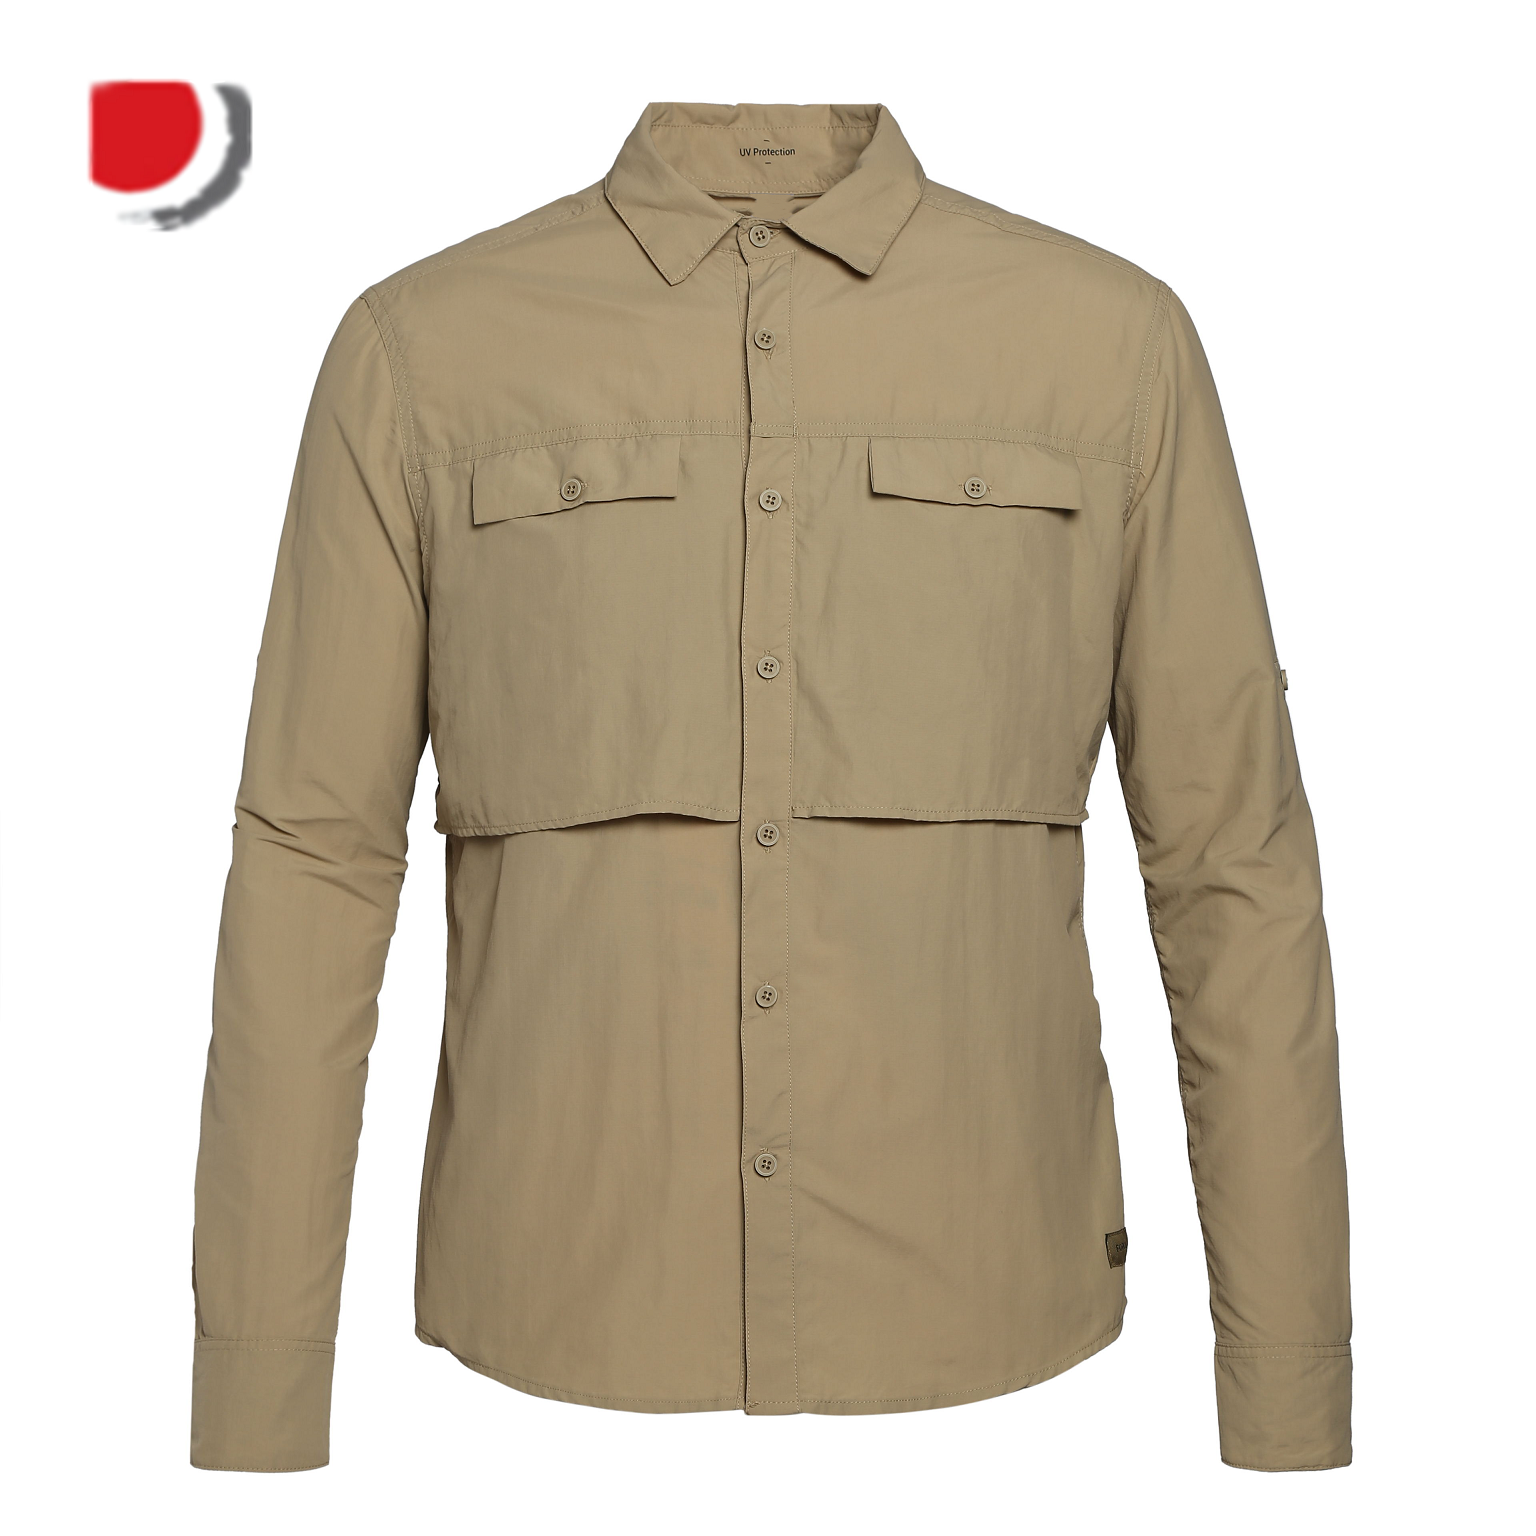 UV Protection Performance Mens Fishing Shirts With Vents